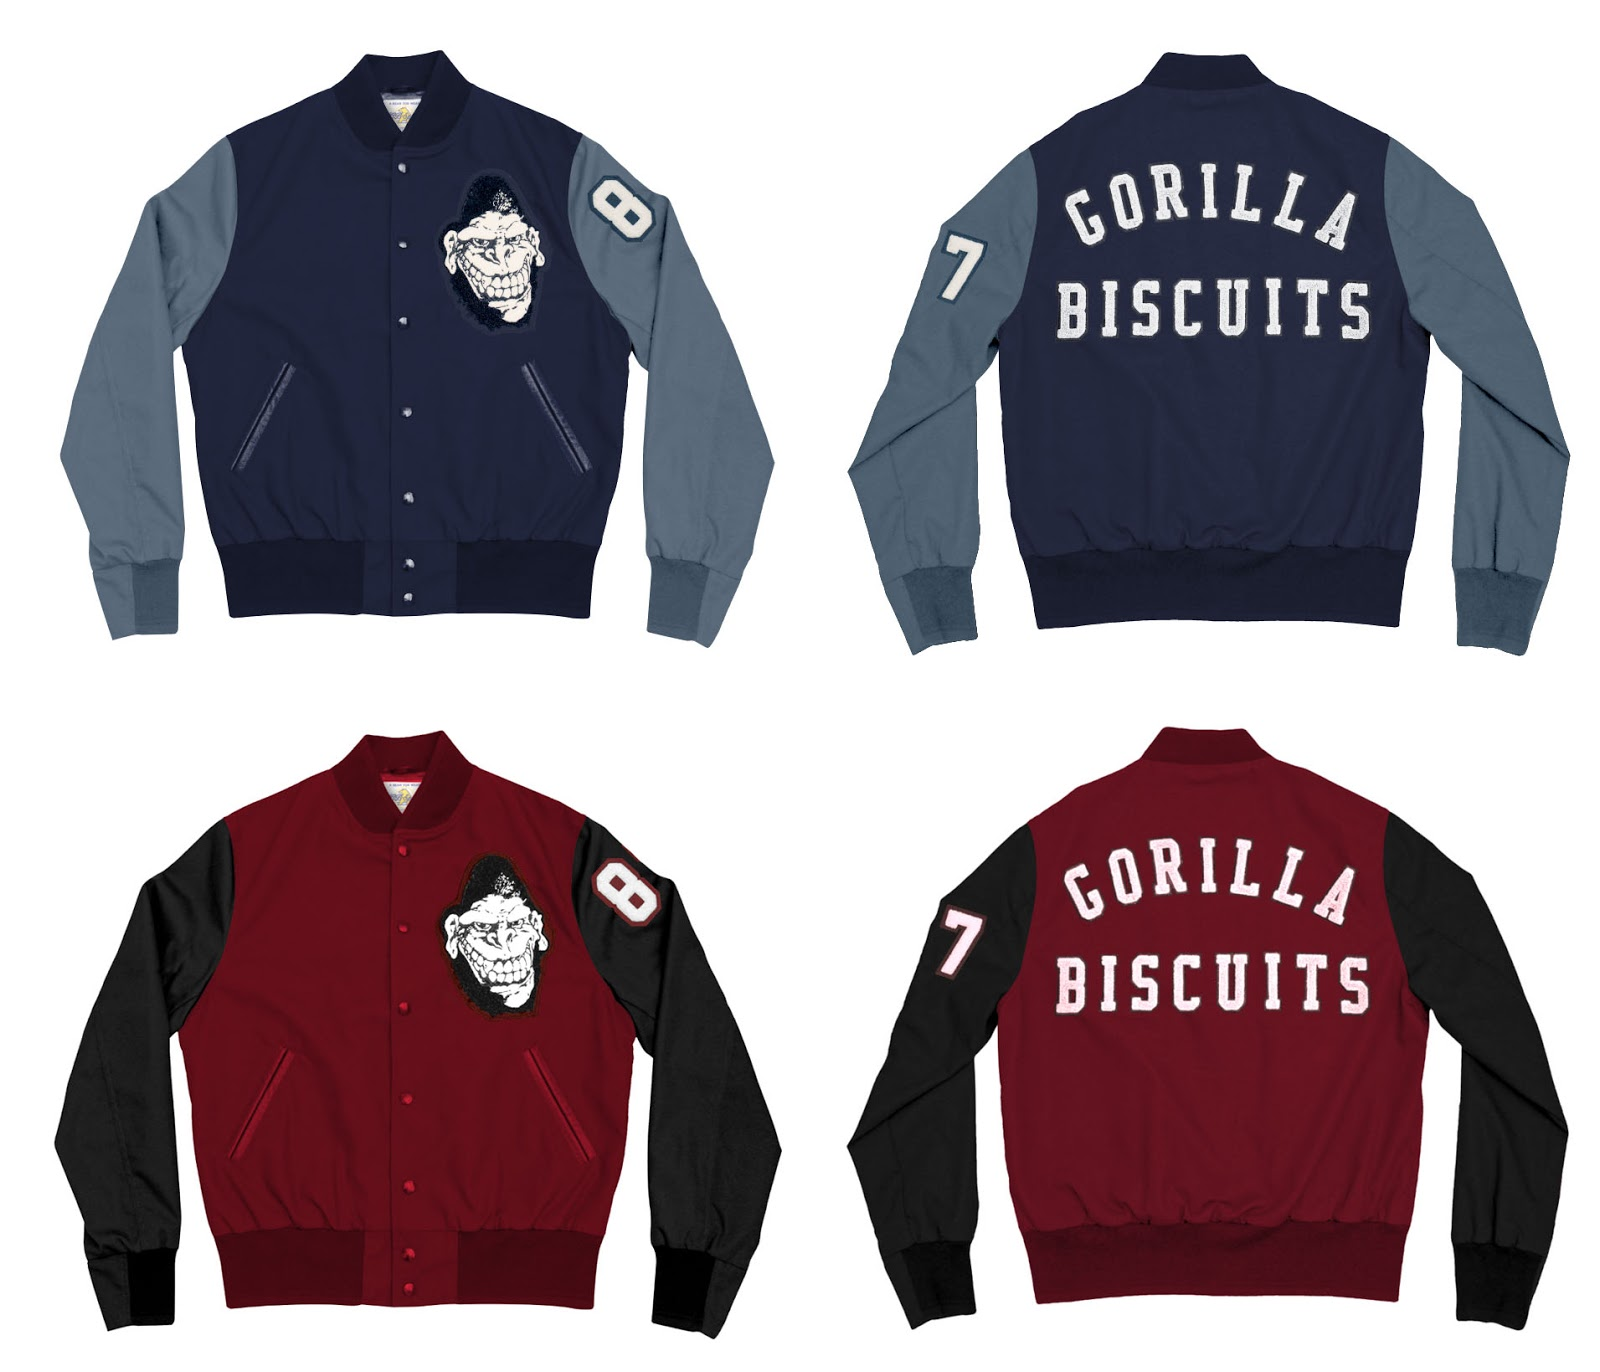 92f76c263728 Pre-Order Super7 s Gorilla Biscuits Varsity Jacket HERE for  295. They are  available in 2 colors - Navy w Grey or Red w Black. These will be custom  made ...